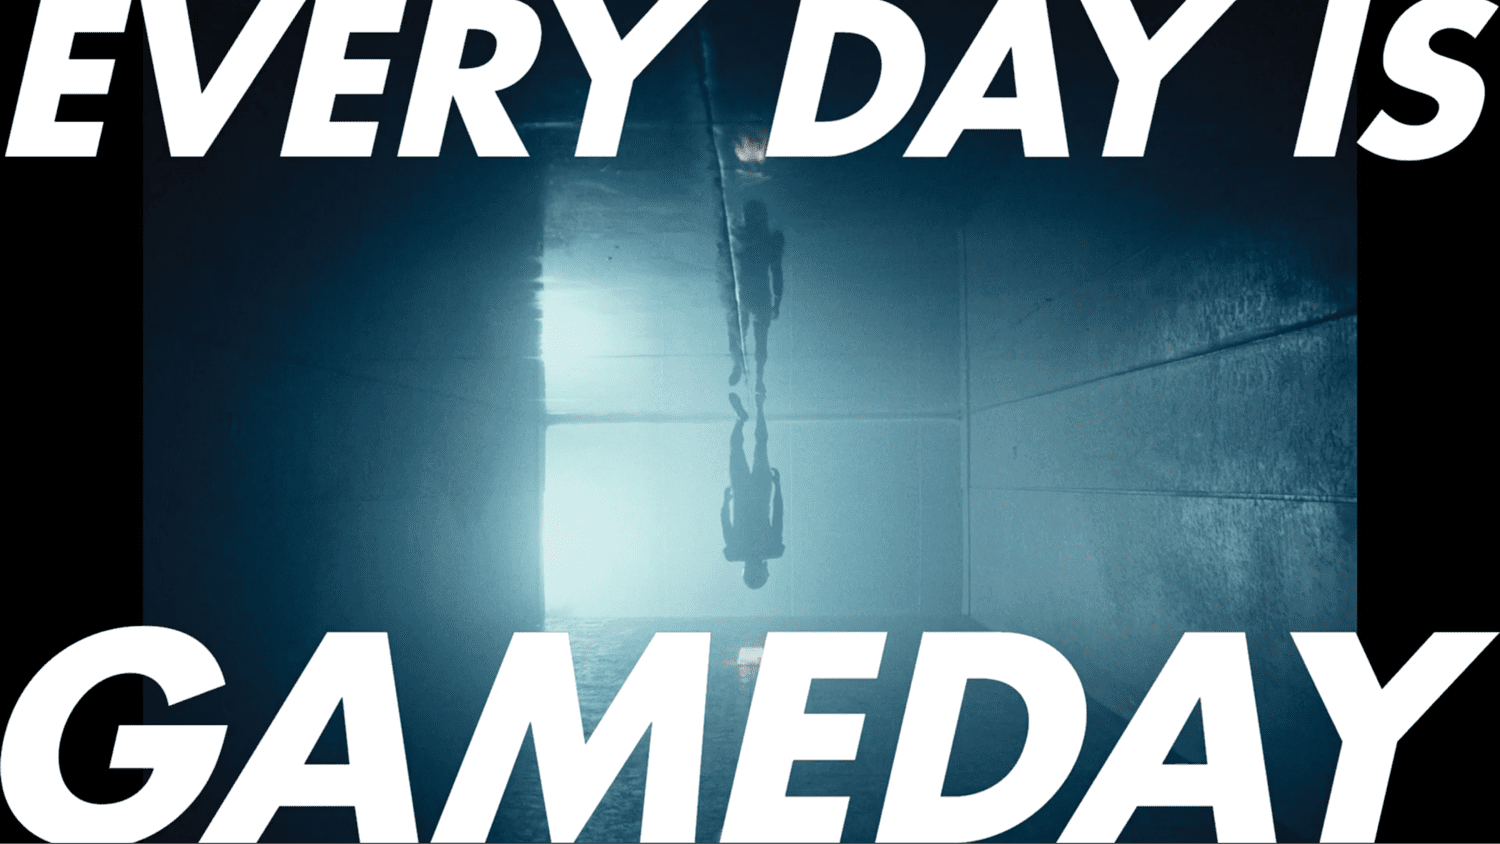 Gillette x NFL: Every Day is Gameday